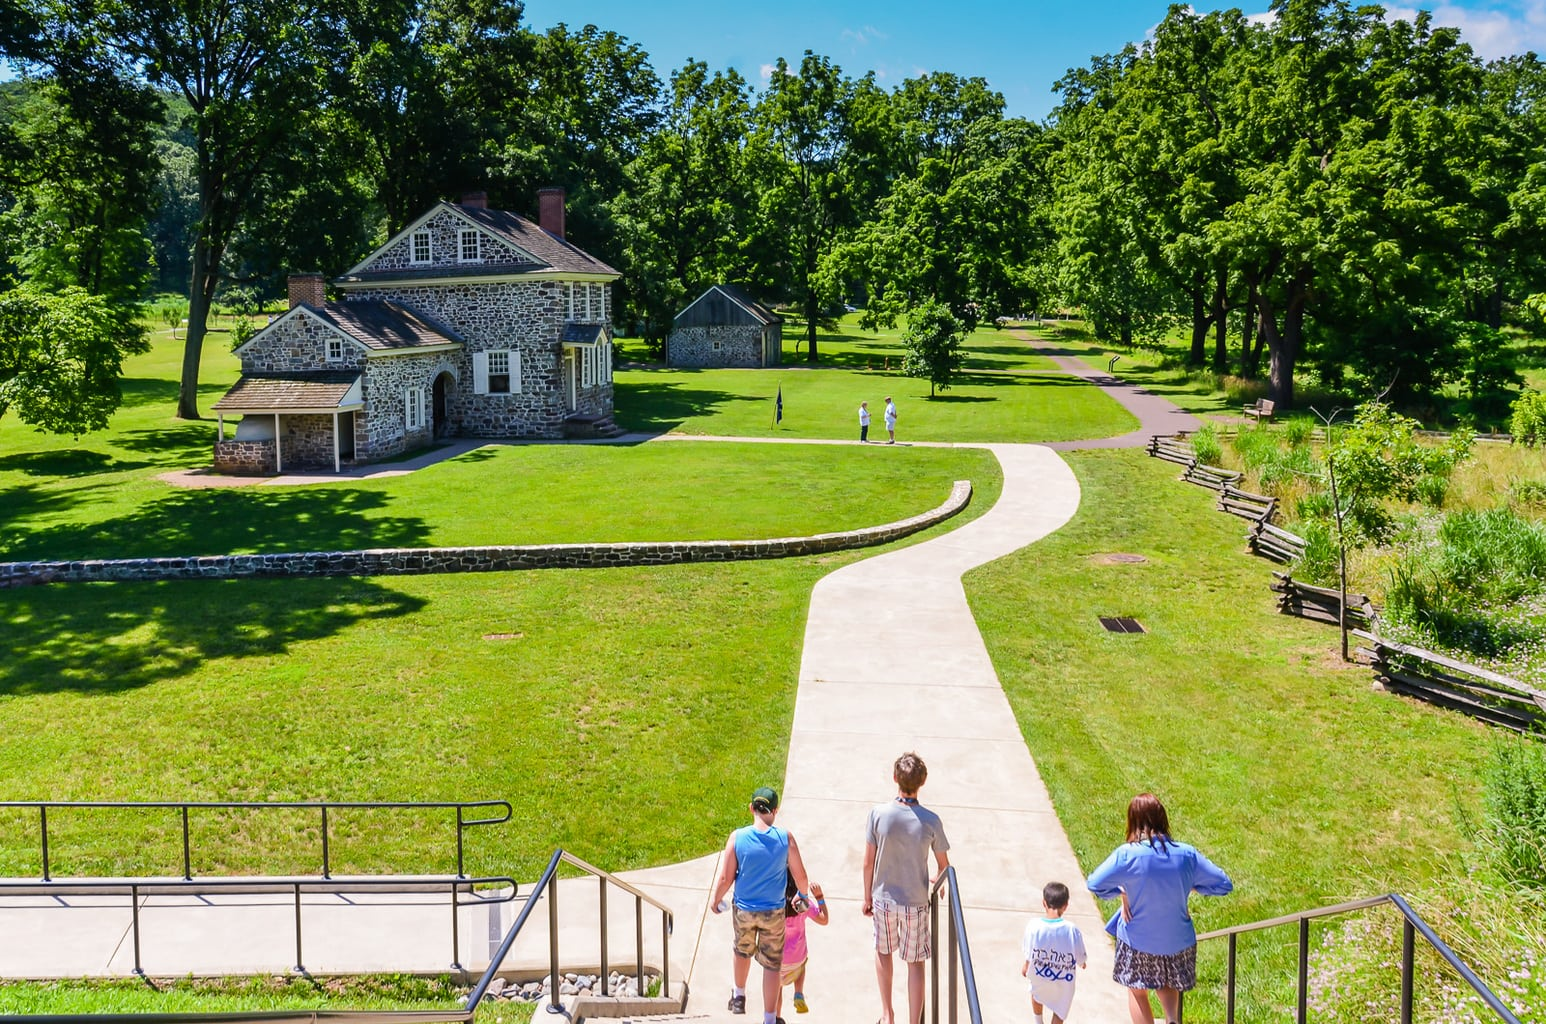 Walkway to Washingtons Headquarters at Valley Forge National Historical Park is one of the fun things to do on a weekend getaway in Valley Forge.